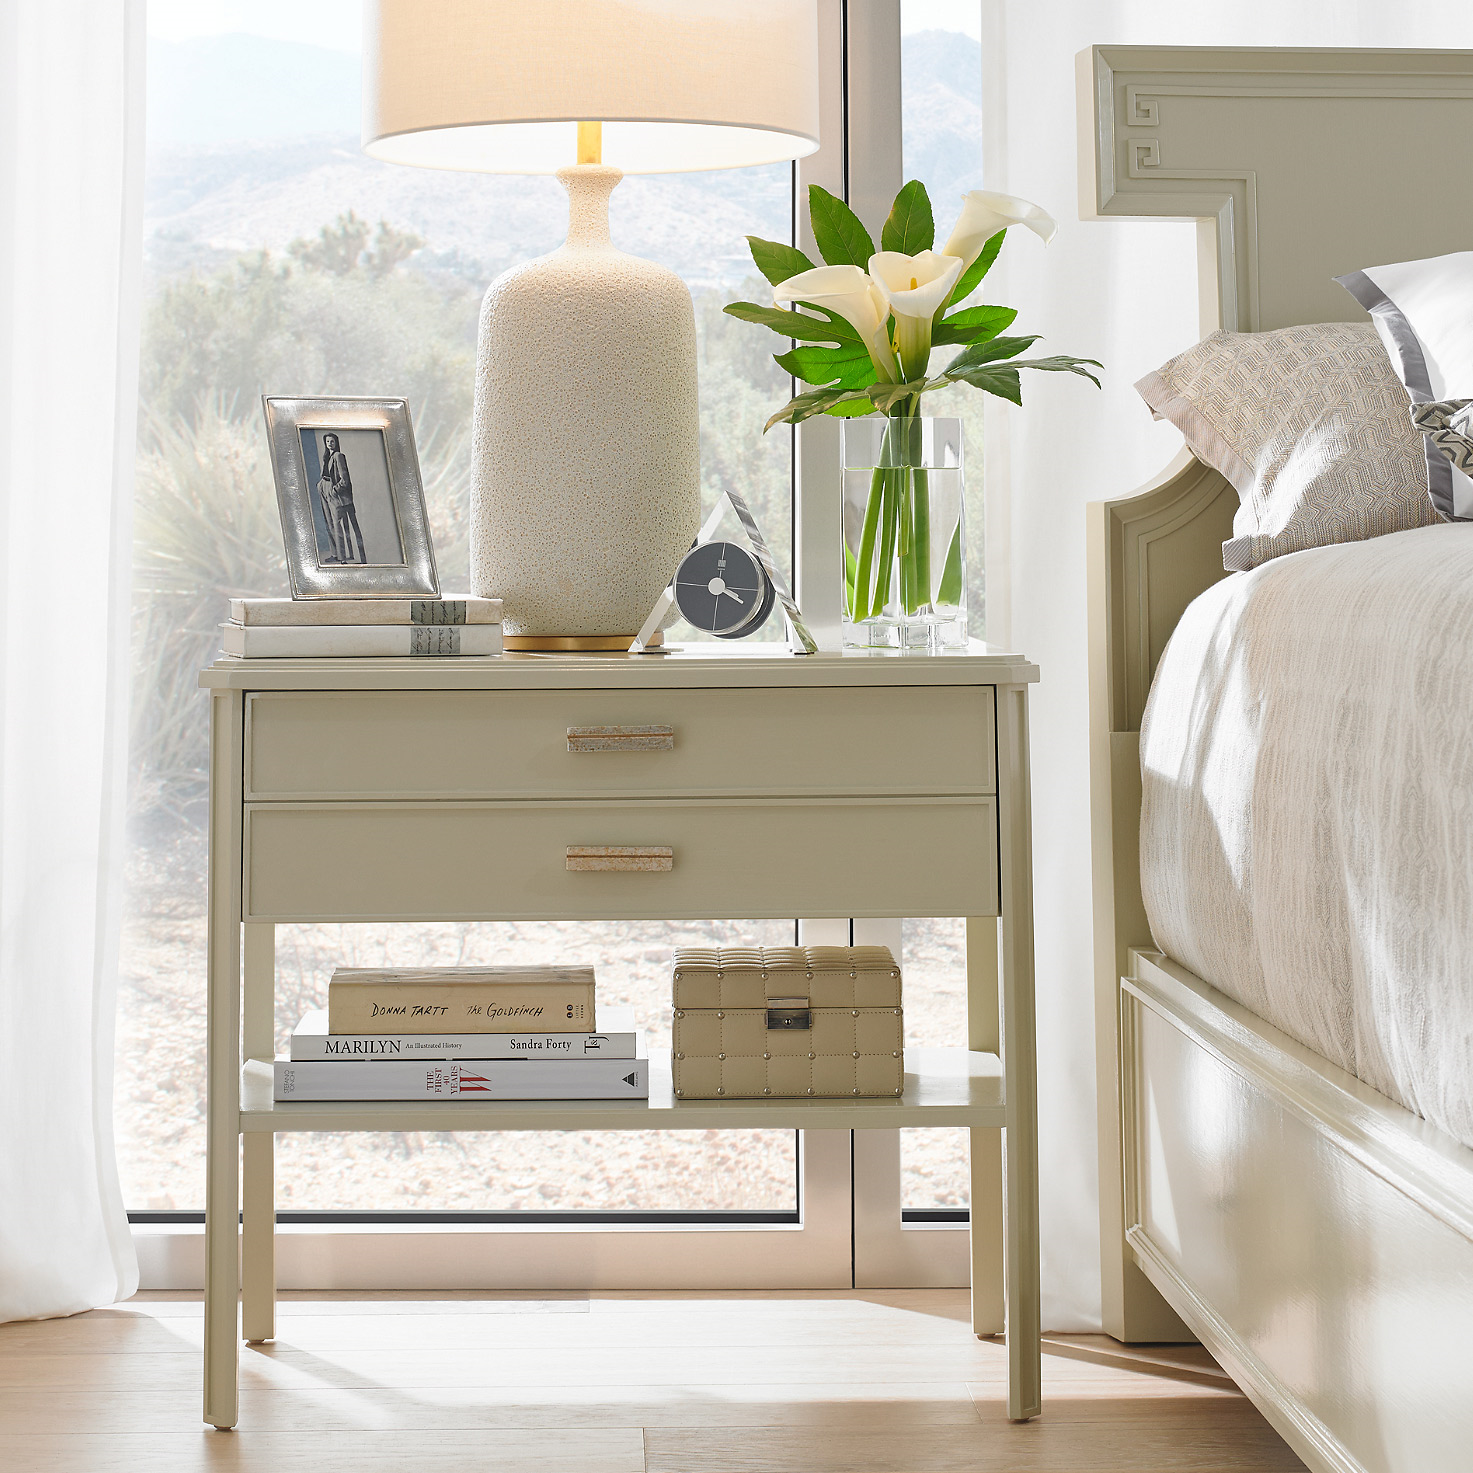 "20) Stanley Furniture Crestaire Southridge Capiz Bedside Table, 30""W, $890 + 20% off"